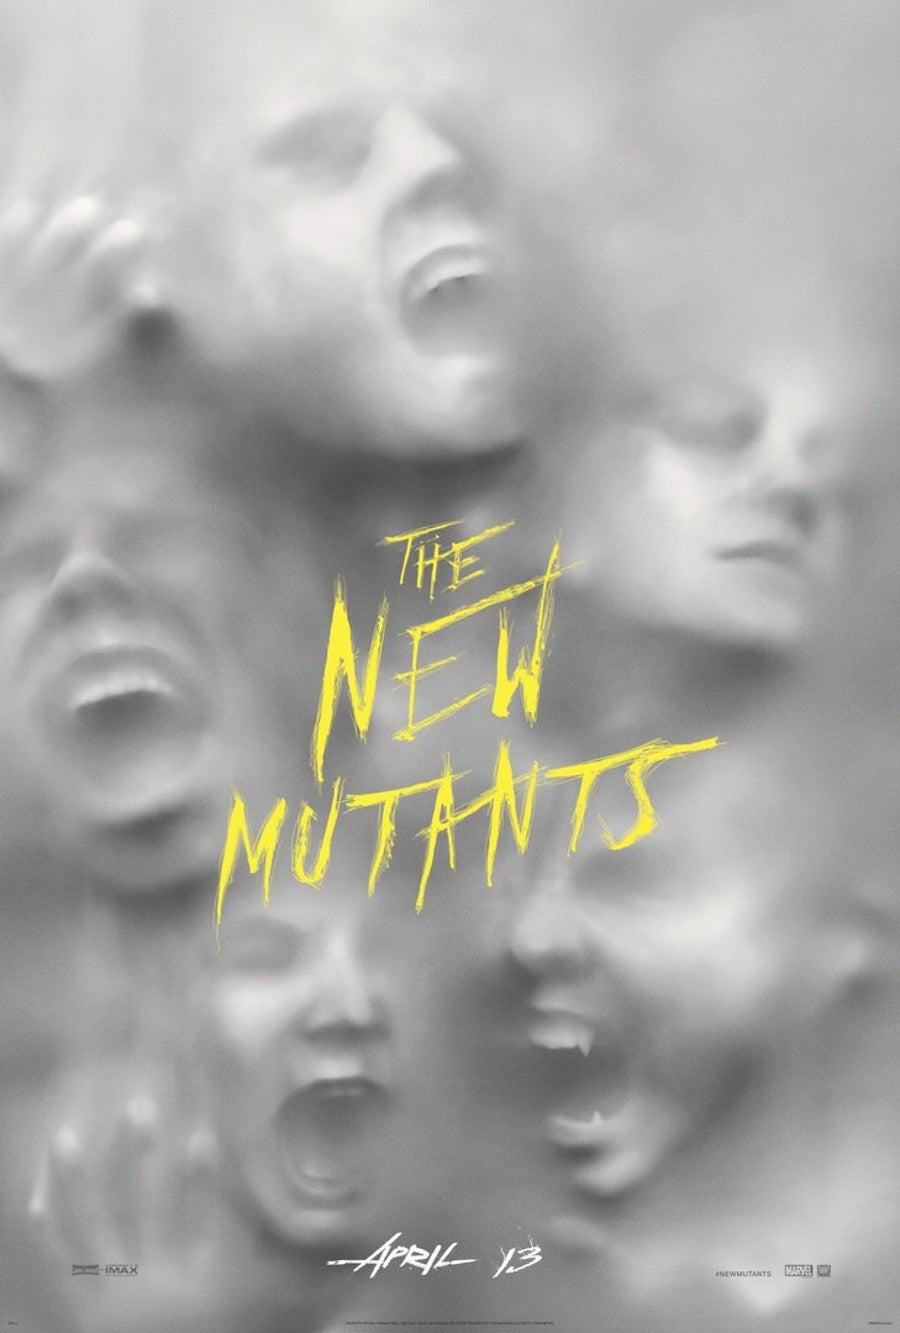 The New Mutants' Movie Poster Released